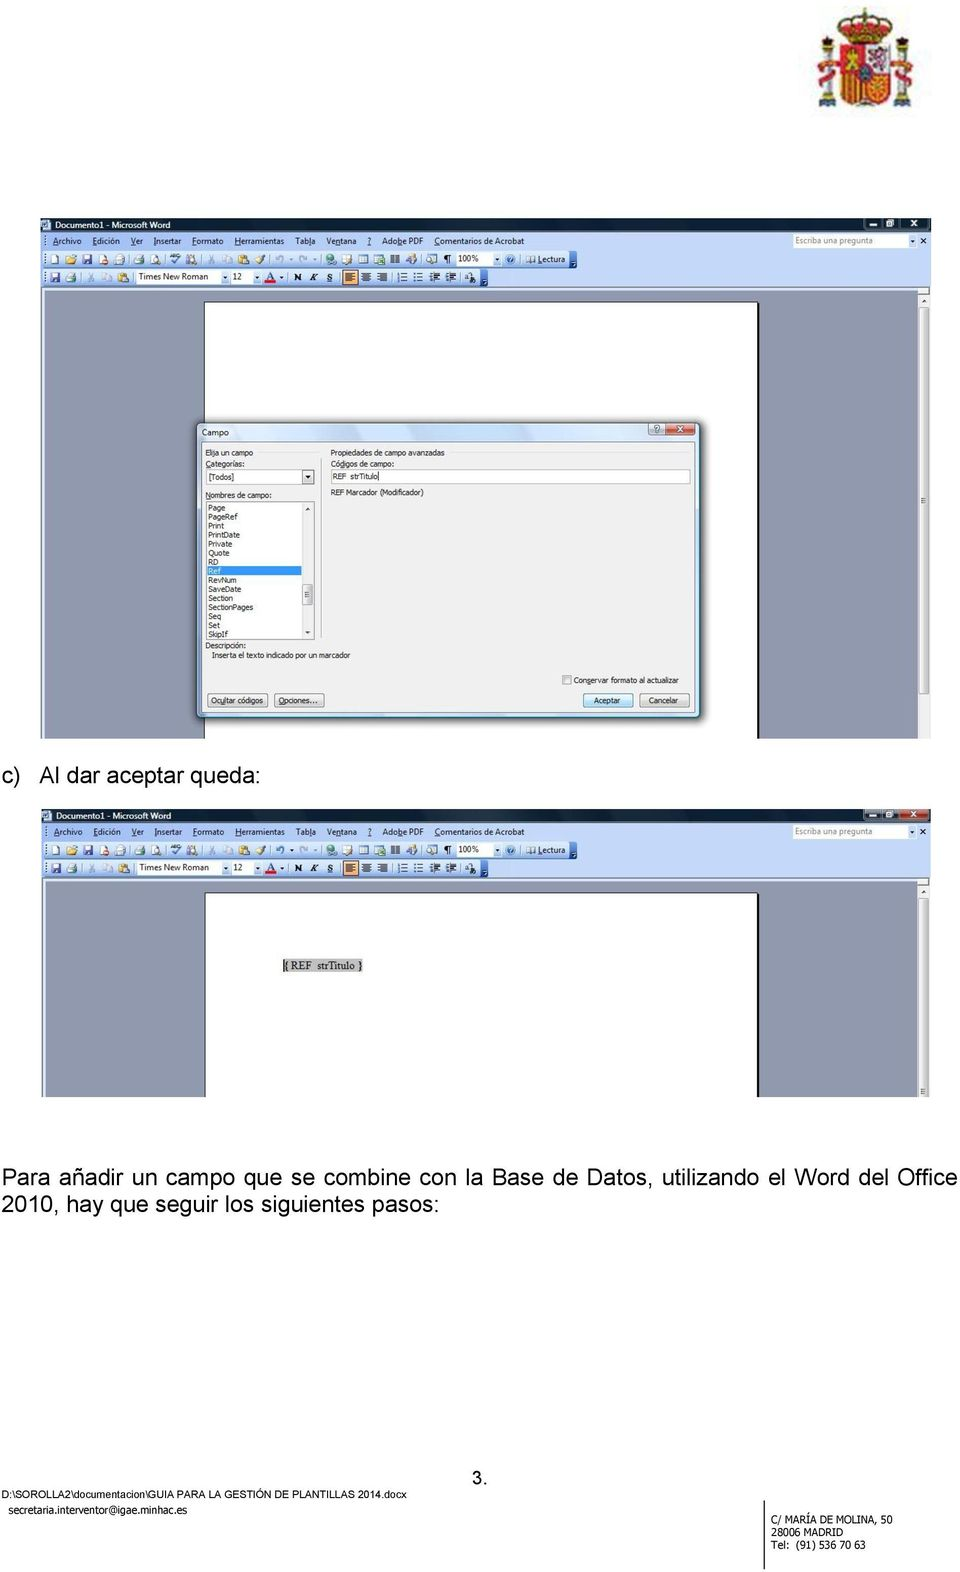 Datos, utilizando el Word del Office